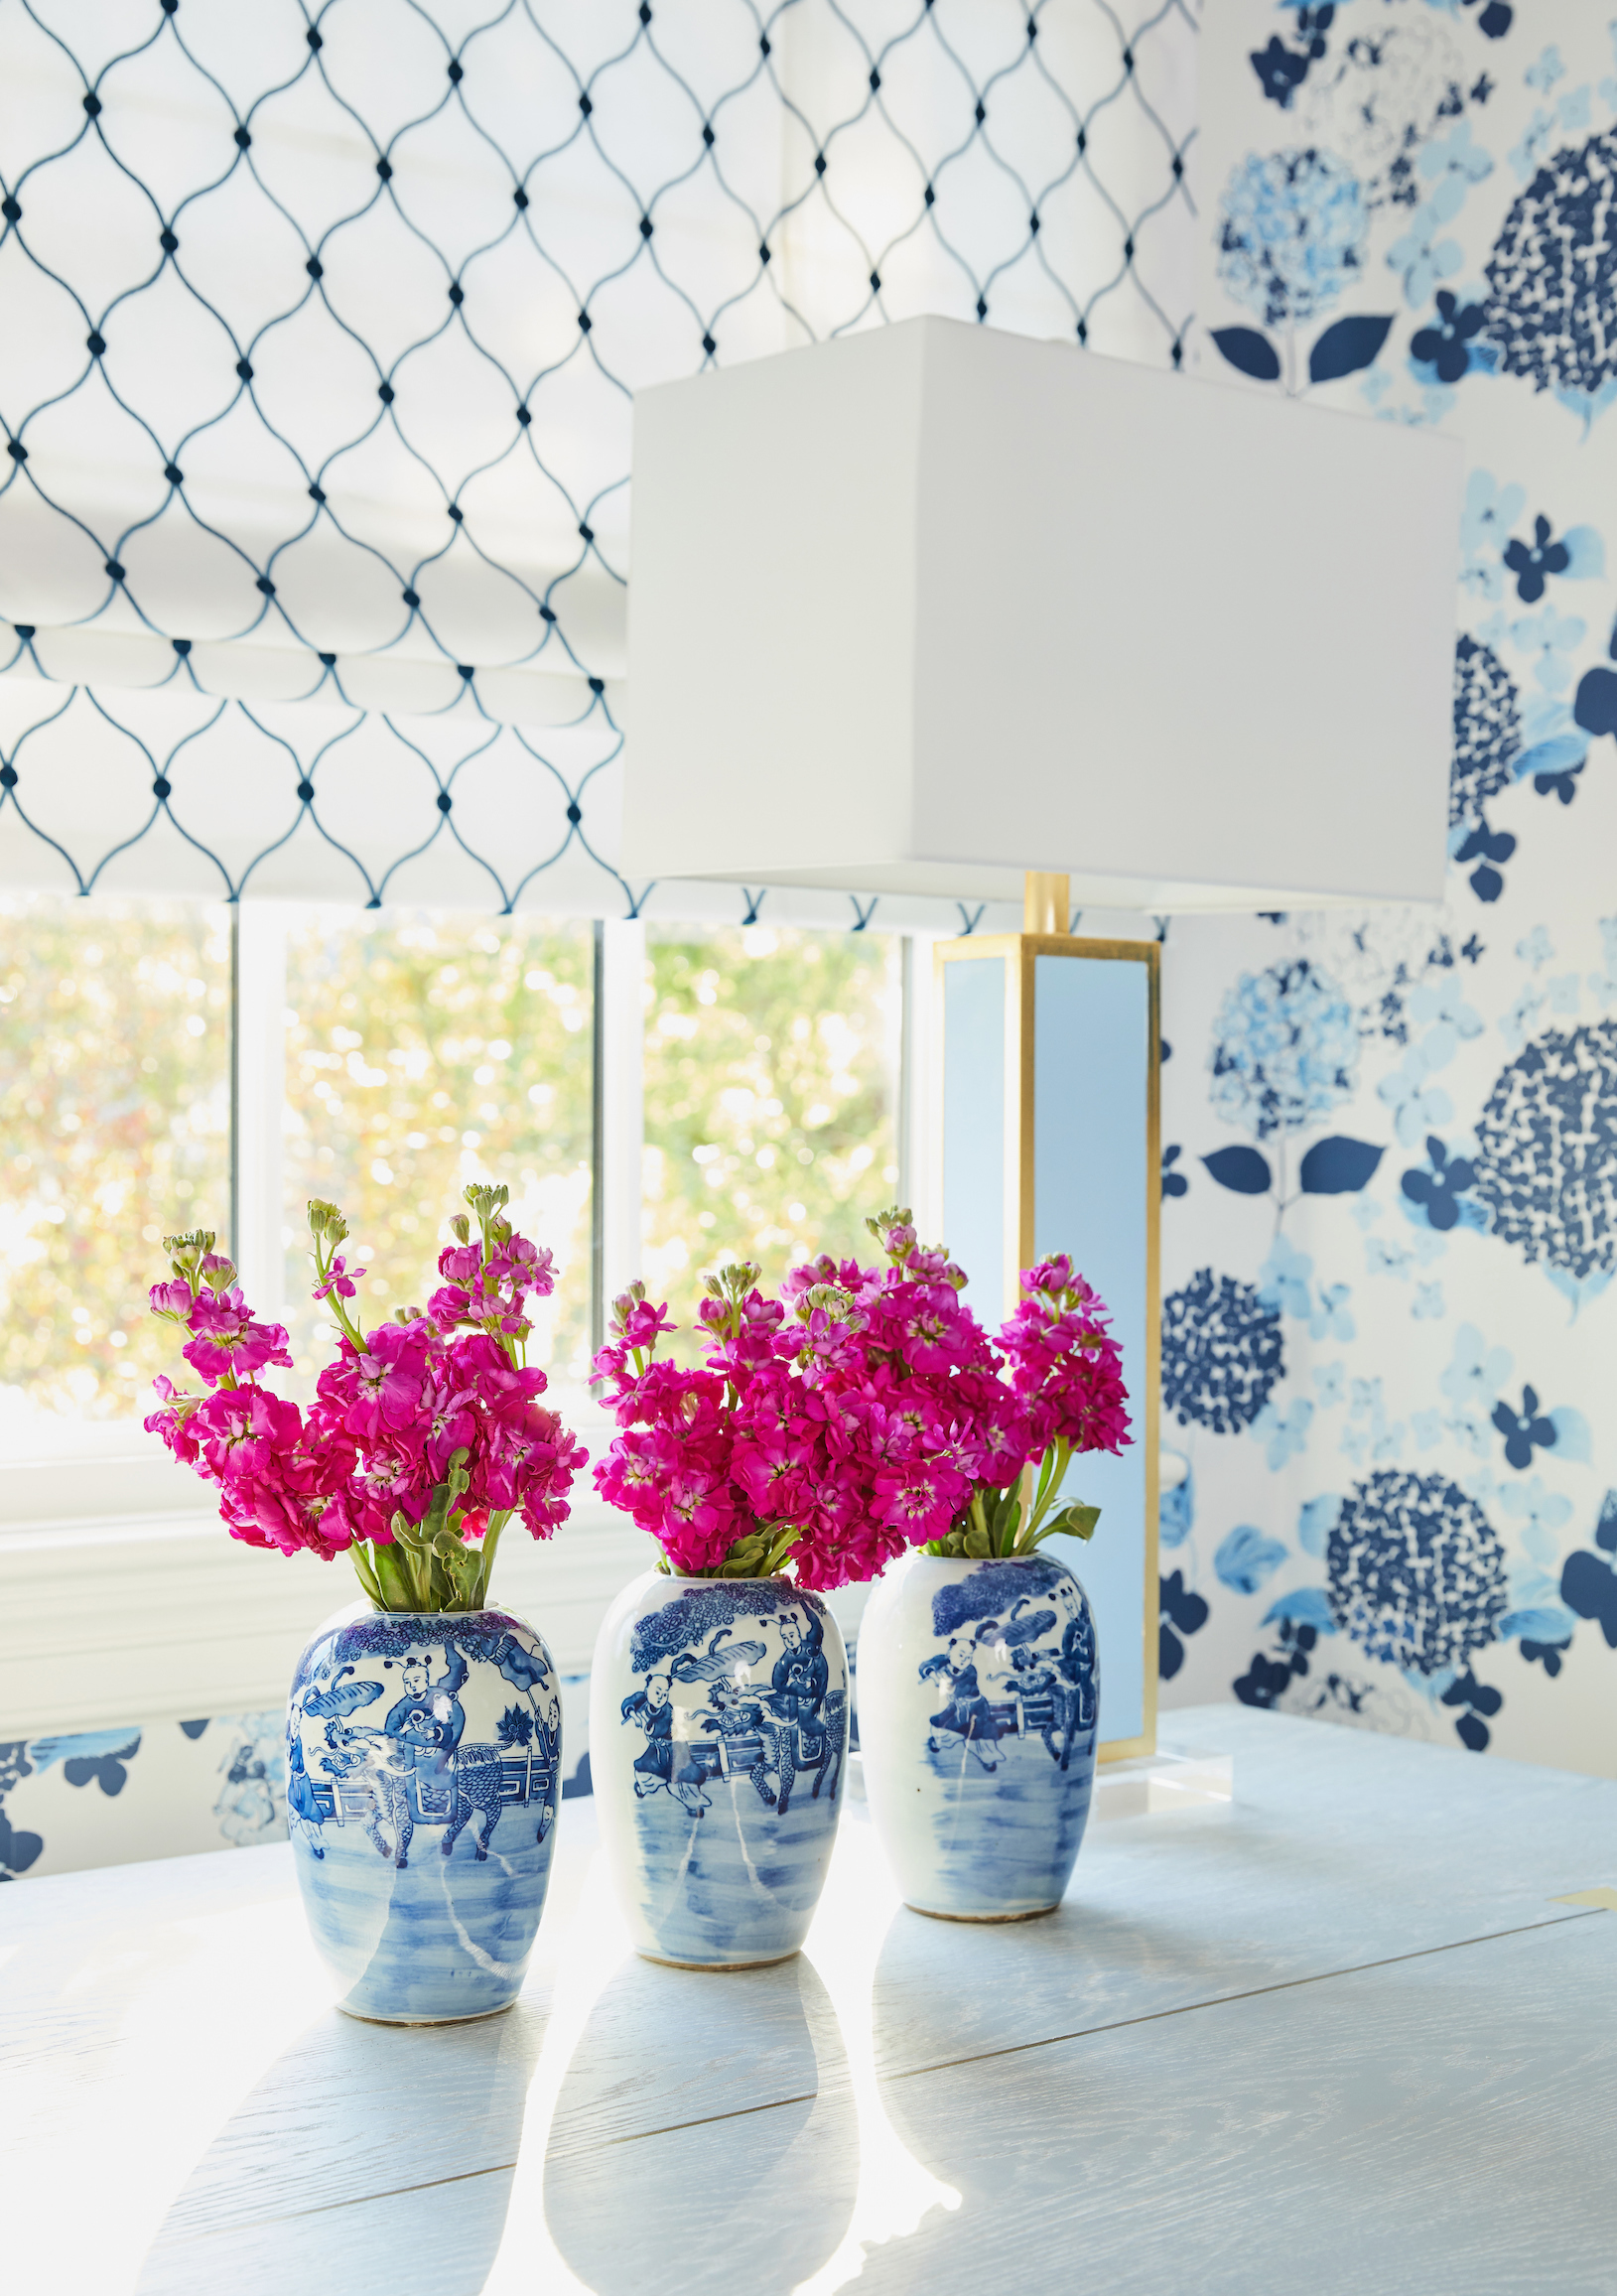 Blue Hydrangea wallpaper by The Pink Pagoda in Mimosa Lane Blog's One Room Challenge project.